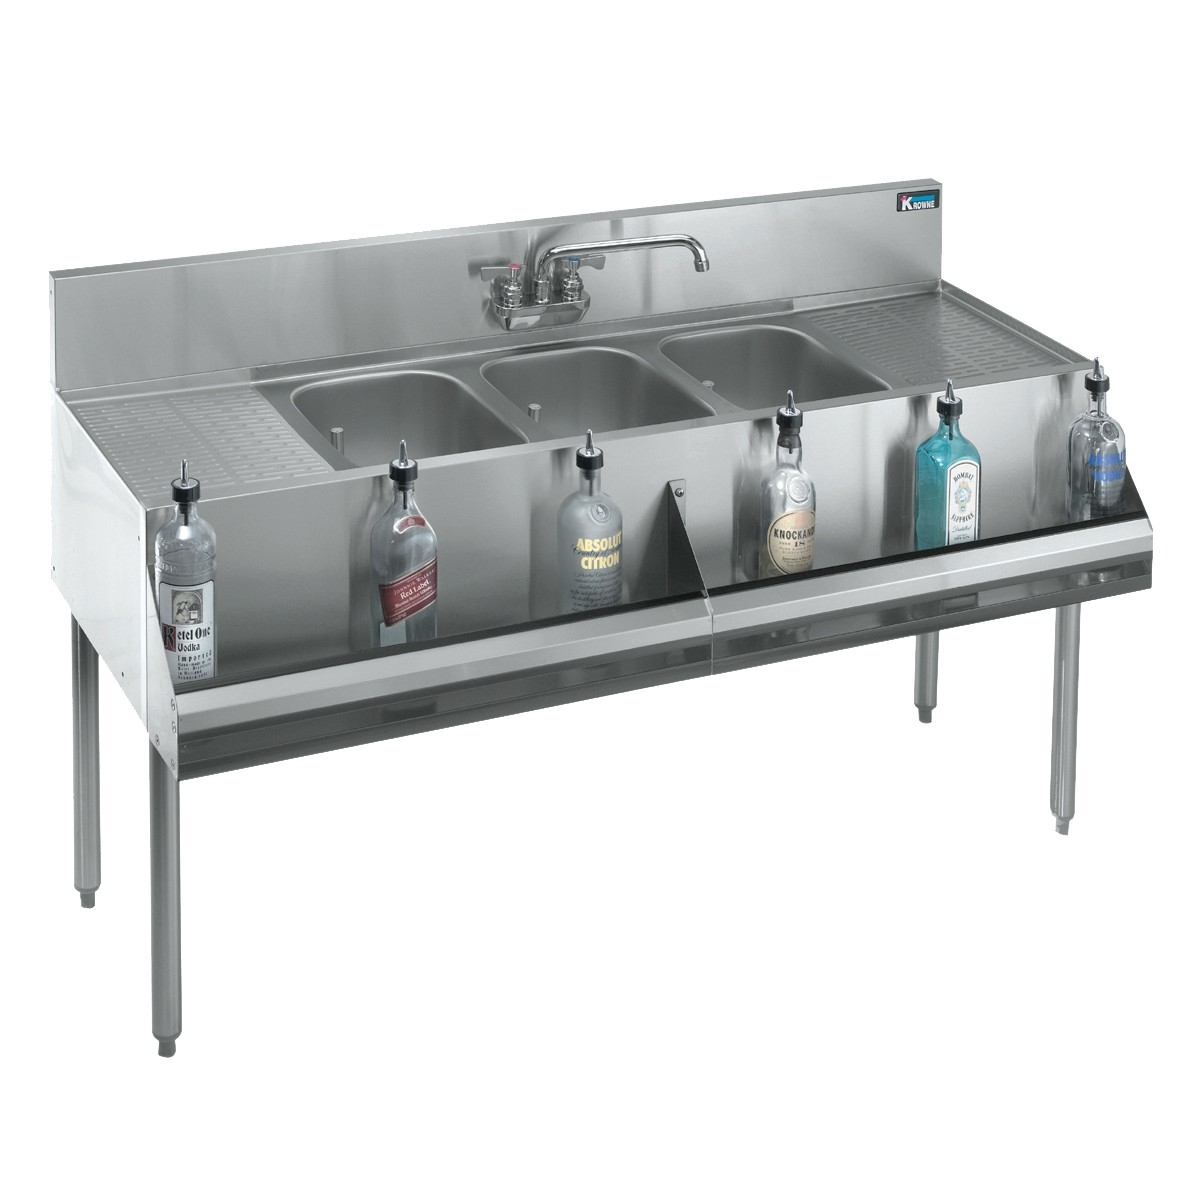 Ideas, 3 compartment sink faucet 3 compartment sink faucet krowne underbar sinks refrigeration faucets and pre rinses 1200 x 1200  .